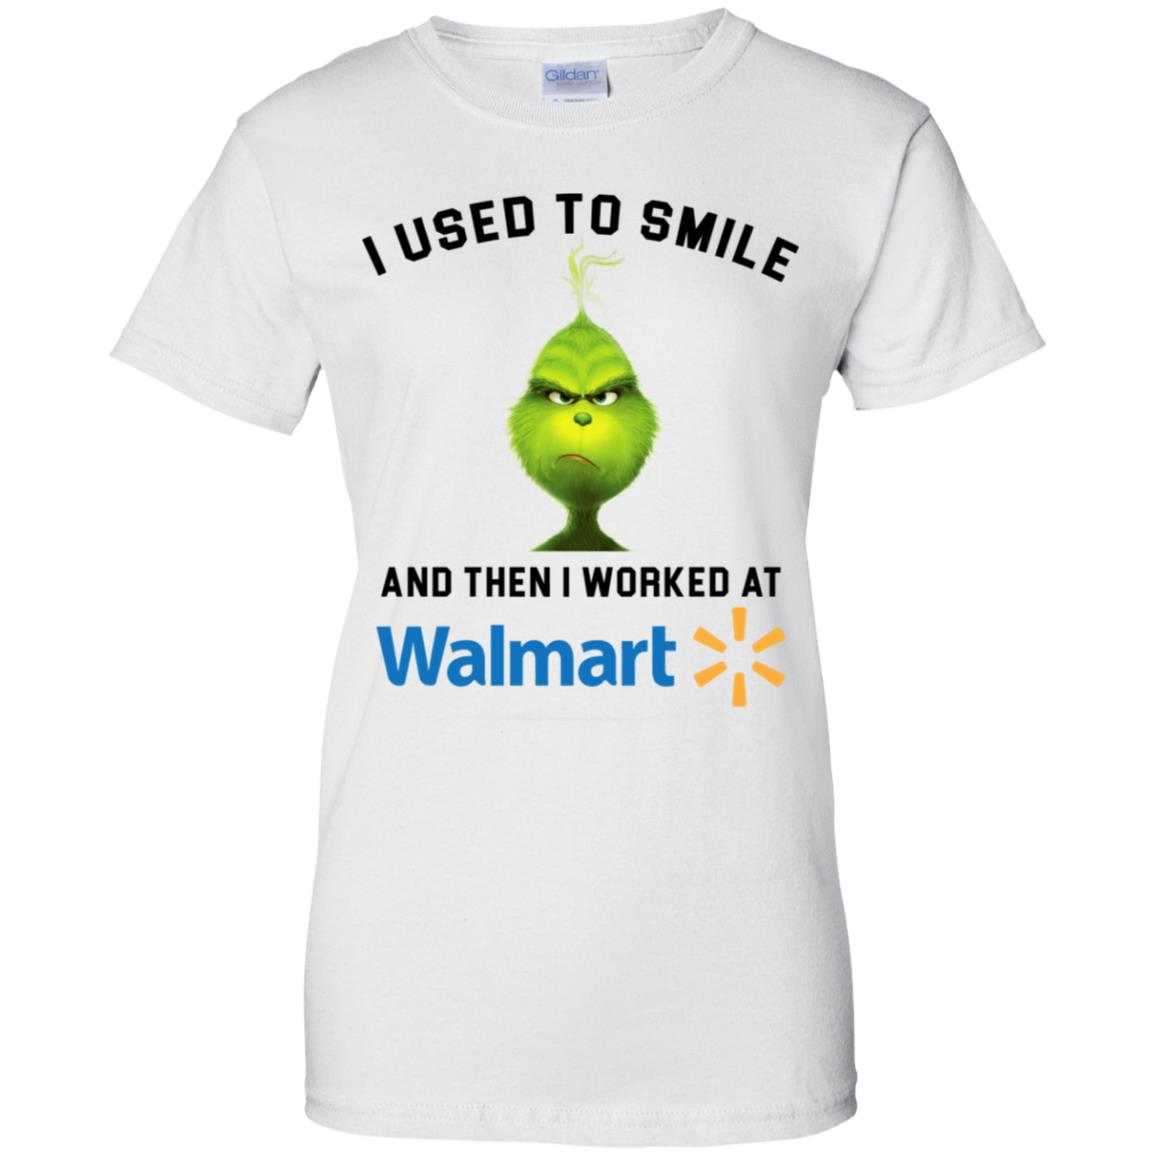 Grinch I used to smile and then I worked at walmart